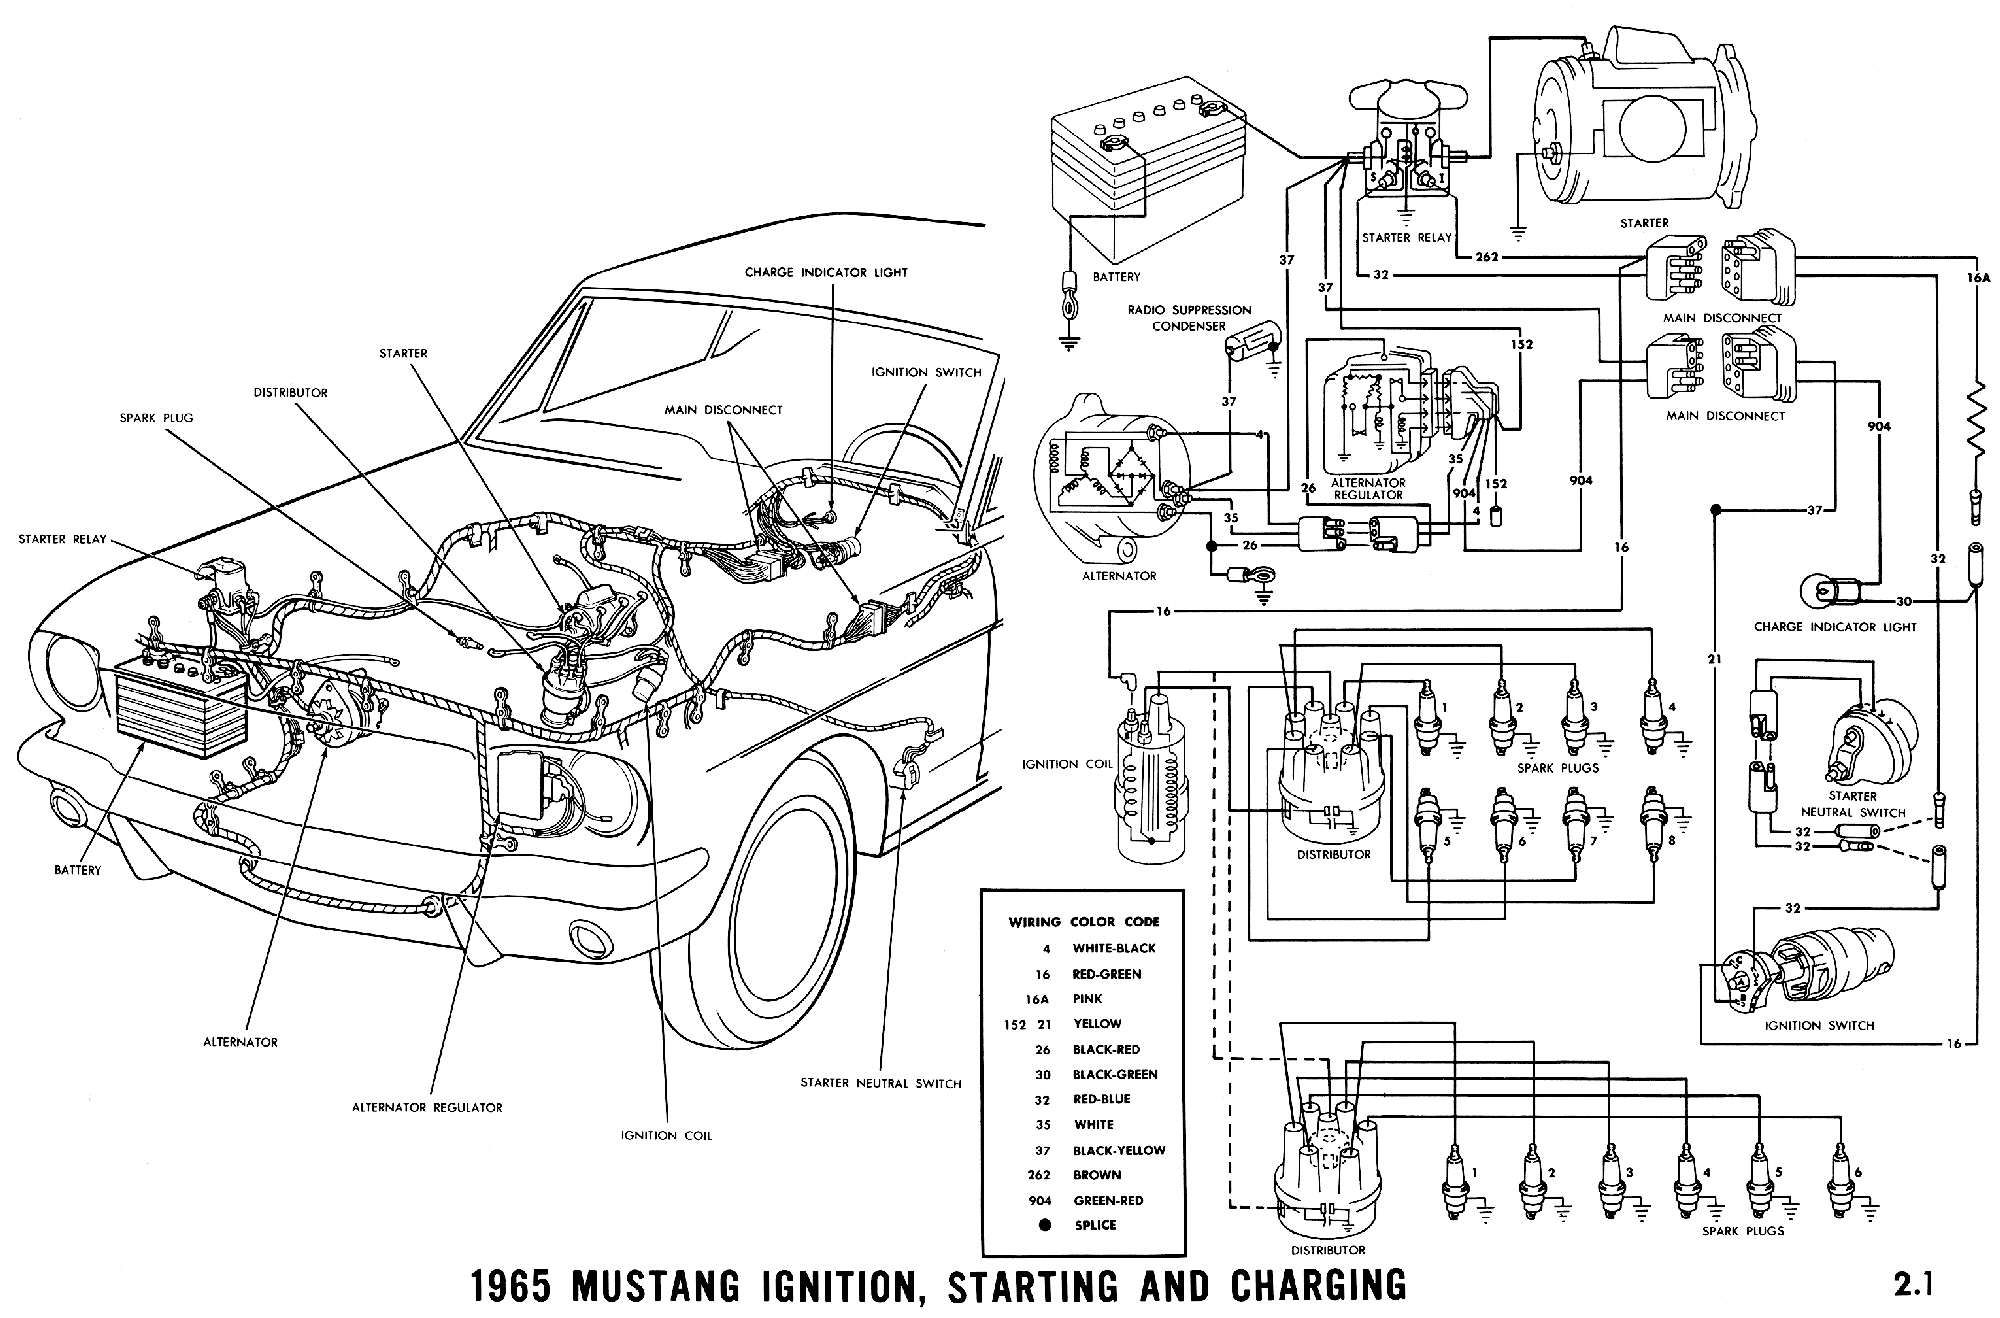 2b4c8d3809962afcbebfb7e8a60704ce 1965 mustang wiring diagrams average joe restoration mustang Ford Alternator Wiring Diagram at bayanpartner.co